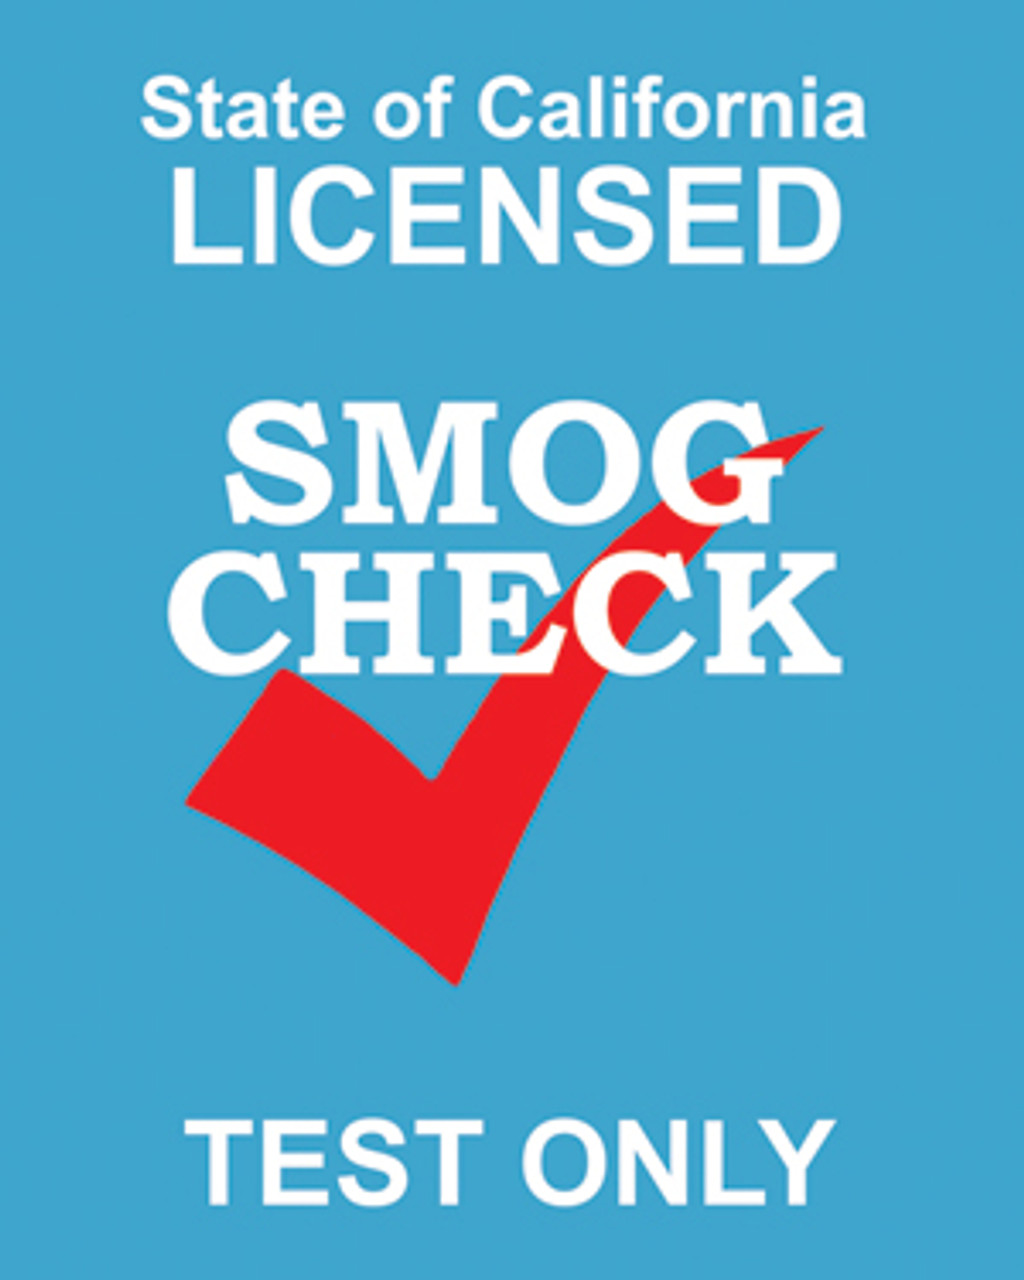 sign state of california licensed smog check test only double sided 24in x 30in emissions. Black Bedroom Furniture Sets. Home Design Ideas